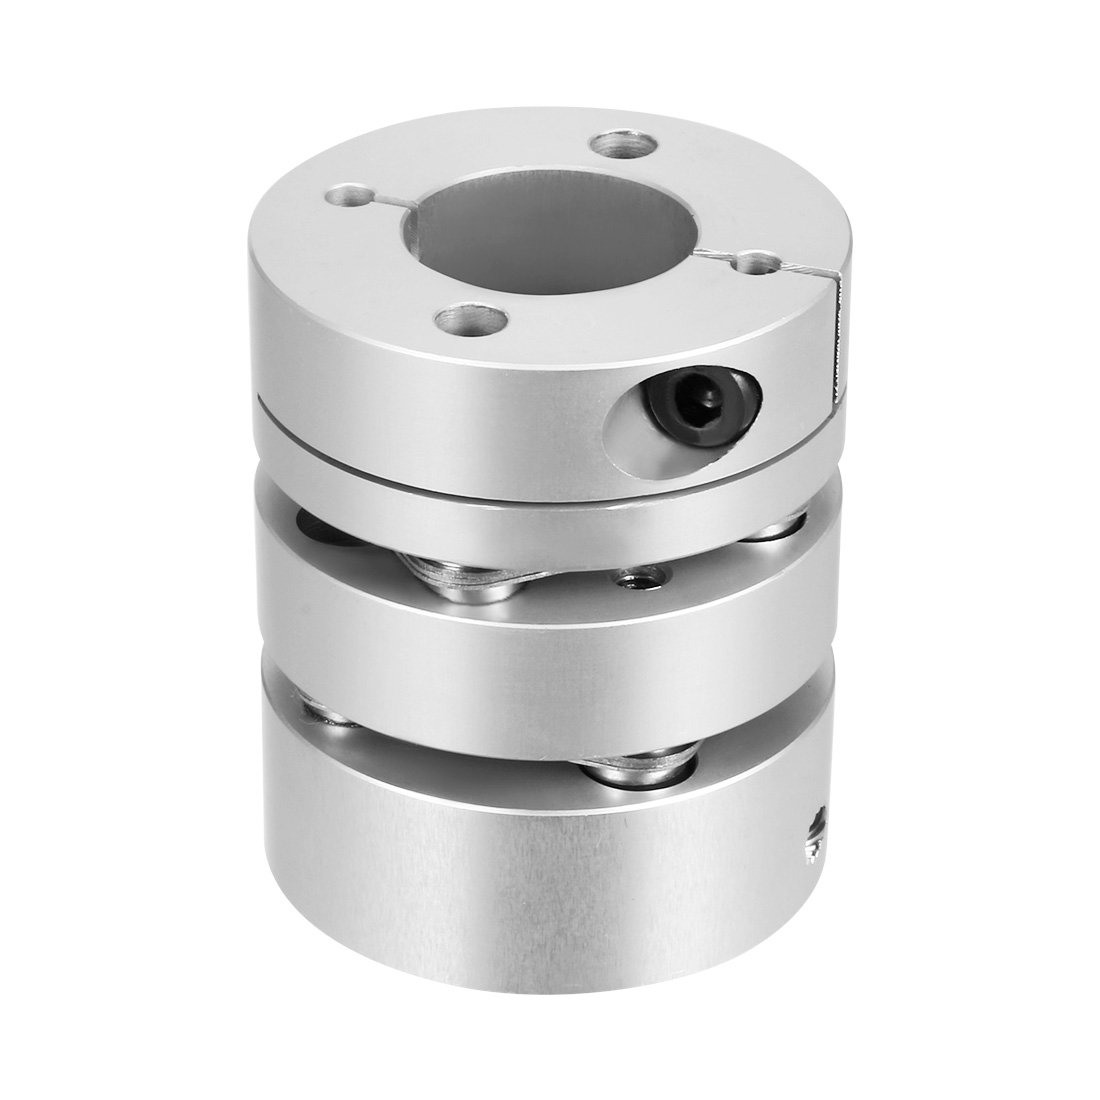 Sourcingmap 10mmx14mm Clamp Tight Motor Shaft Double Diaphragm Coupling Coupler a17110100ux0202